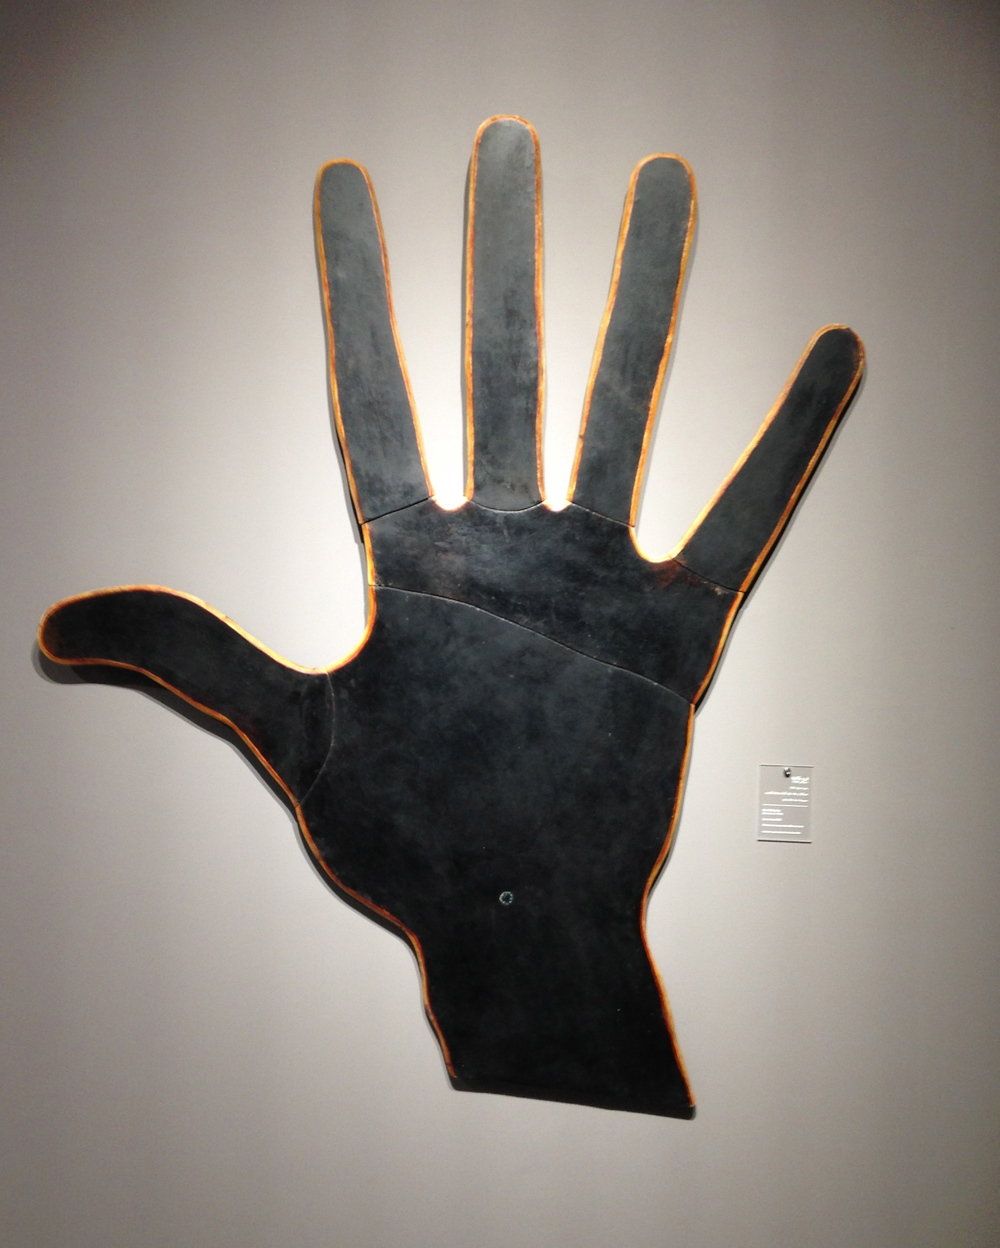 one of belkahia's iconic hands